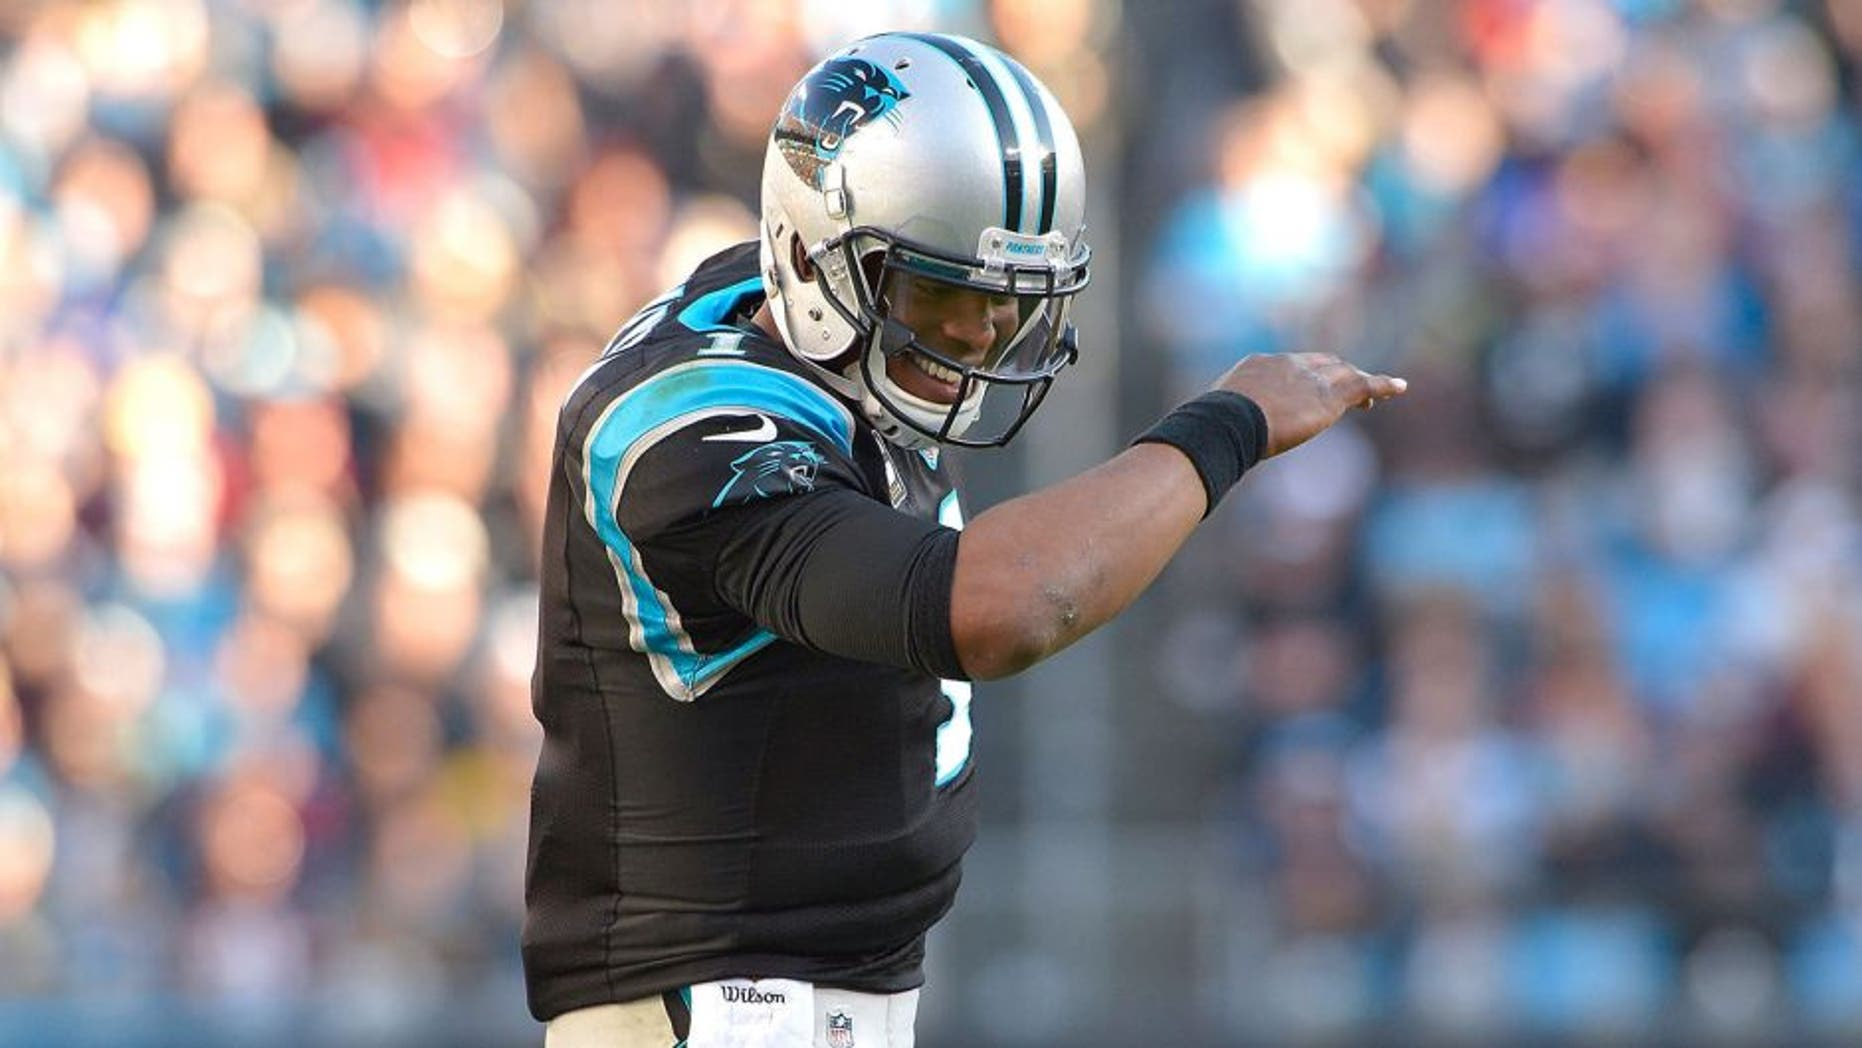 CHARLOTTE, NC - NOVEMBER 22: Cam Newton #1 of the Carolina Panthers does The Dab after a touchdown against the Washington Redskins during their game at Bank of America Stadium on November 22, 2015 in Charlotte, North Carolina. (Photo by Grant Halverson/Getty Images)